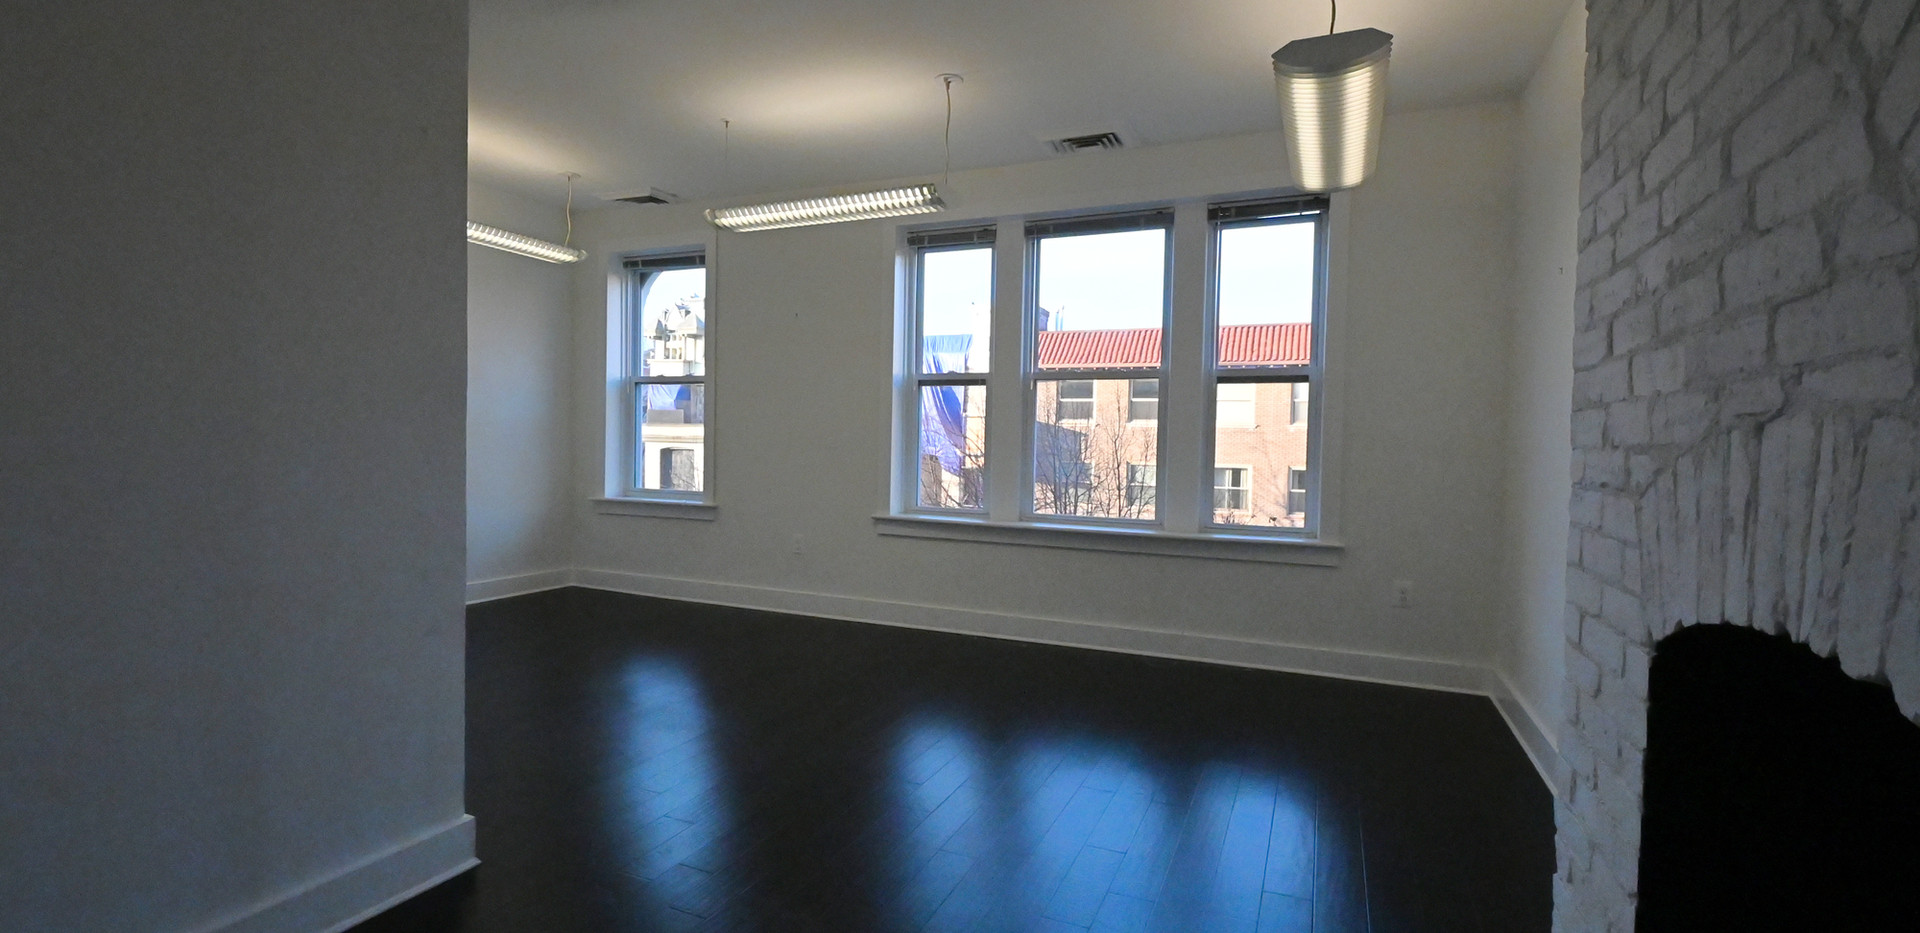 Dupont Circle Office Space for Lease